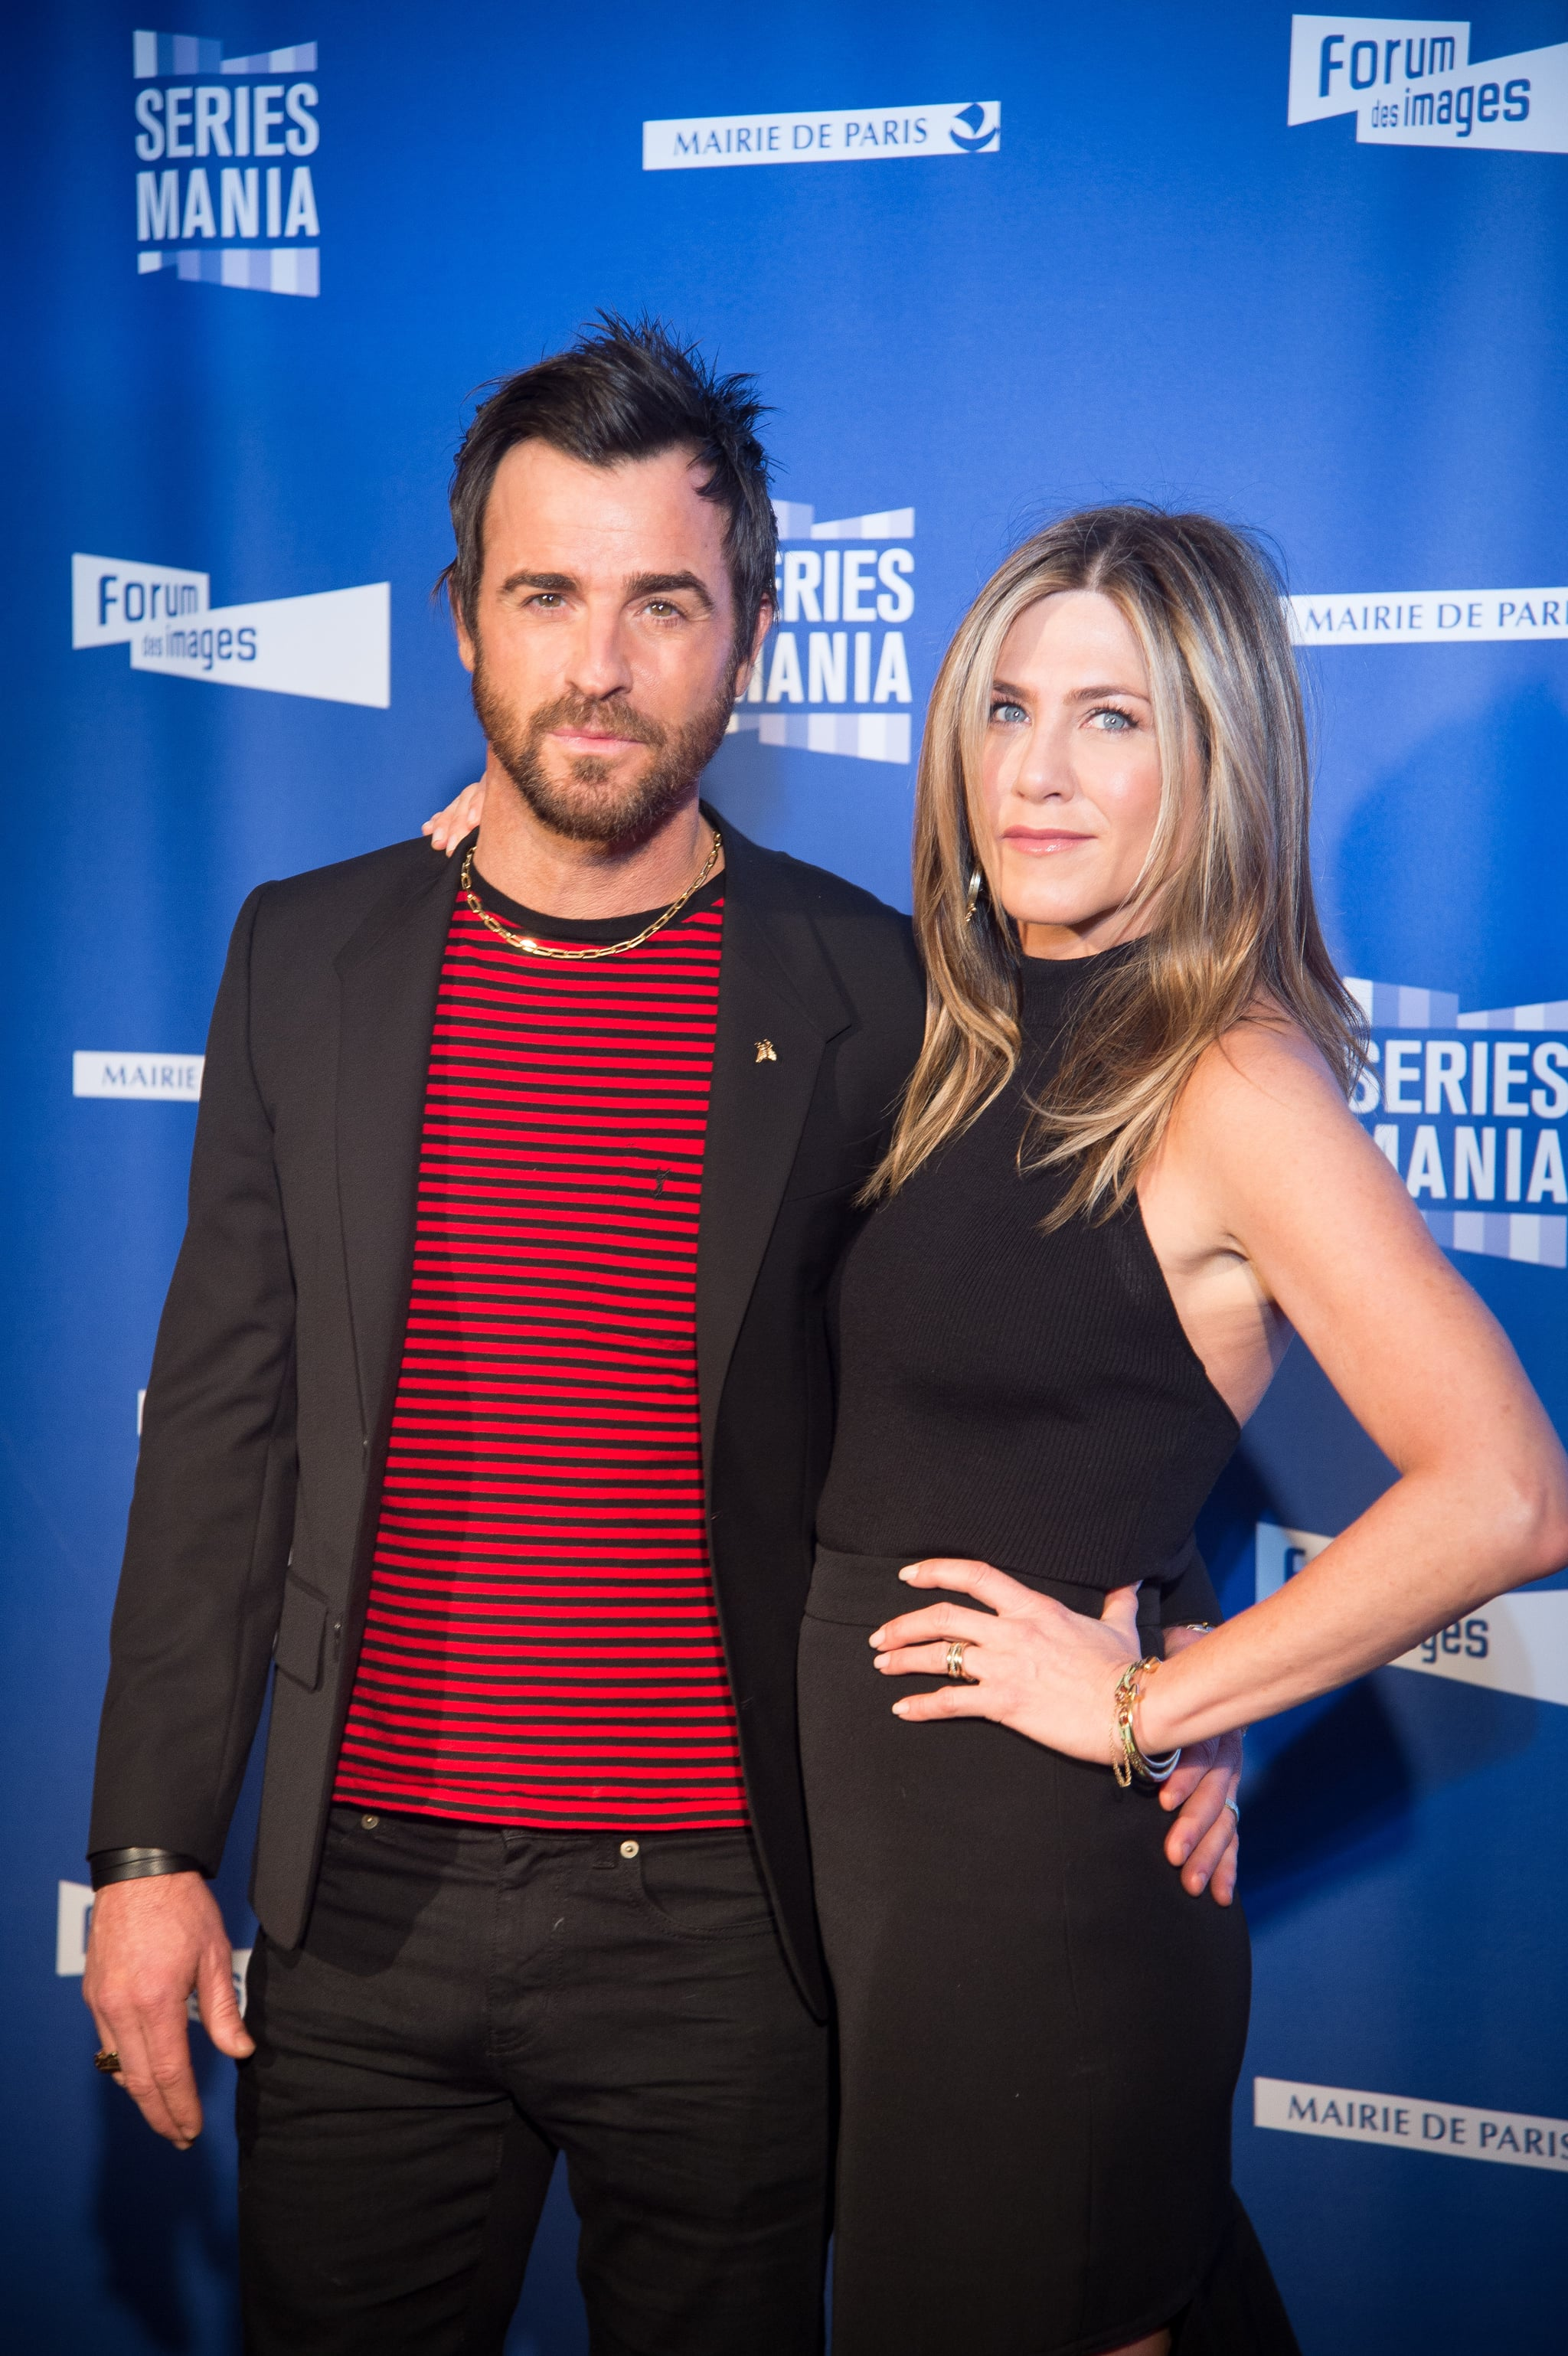 PARIS, FRANCE - APRIL 13:  Justin Theroux and Jennifer Aniston attend the Festival Serie Mania Opening Night, at Le Grand Rex on April 13, 2017 in Paris, France.  (Photo by Stephane Cardinale - Corbis/Corbis via Getty Images)